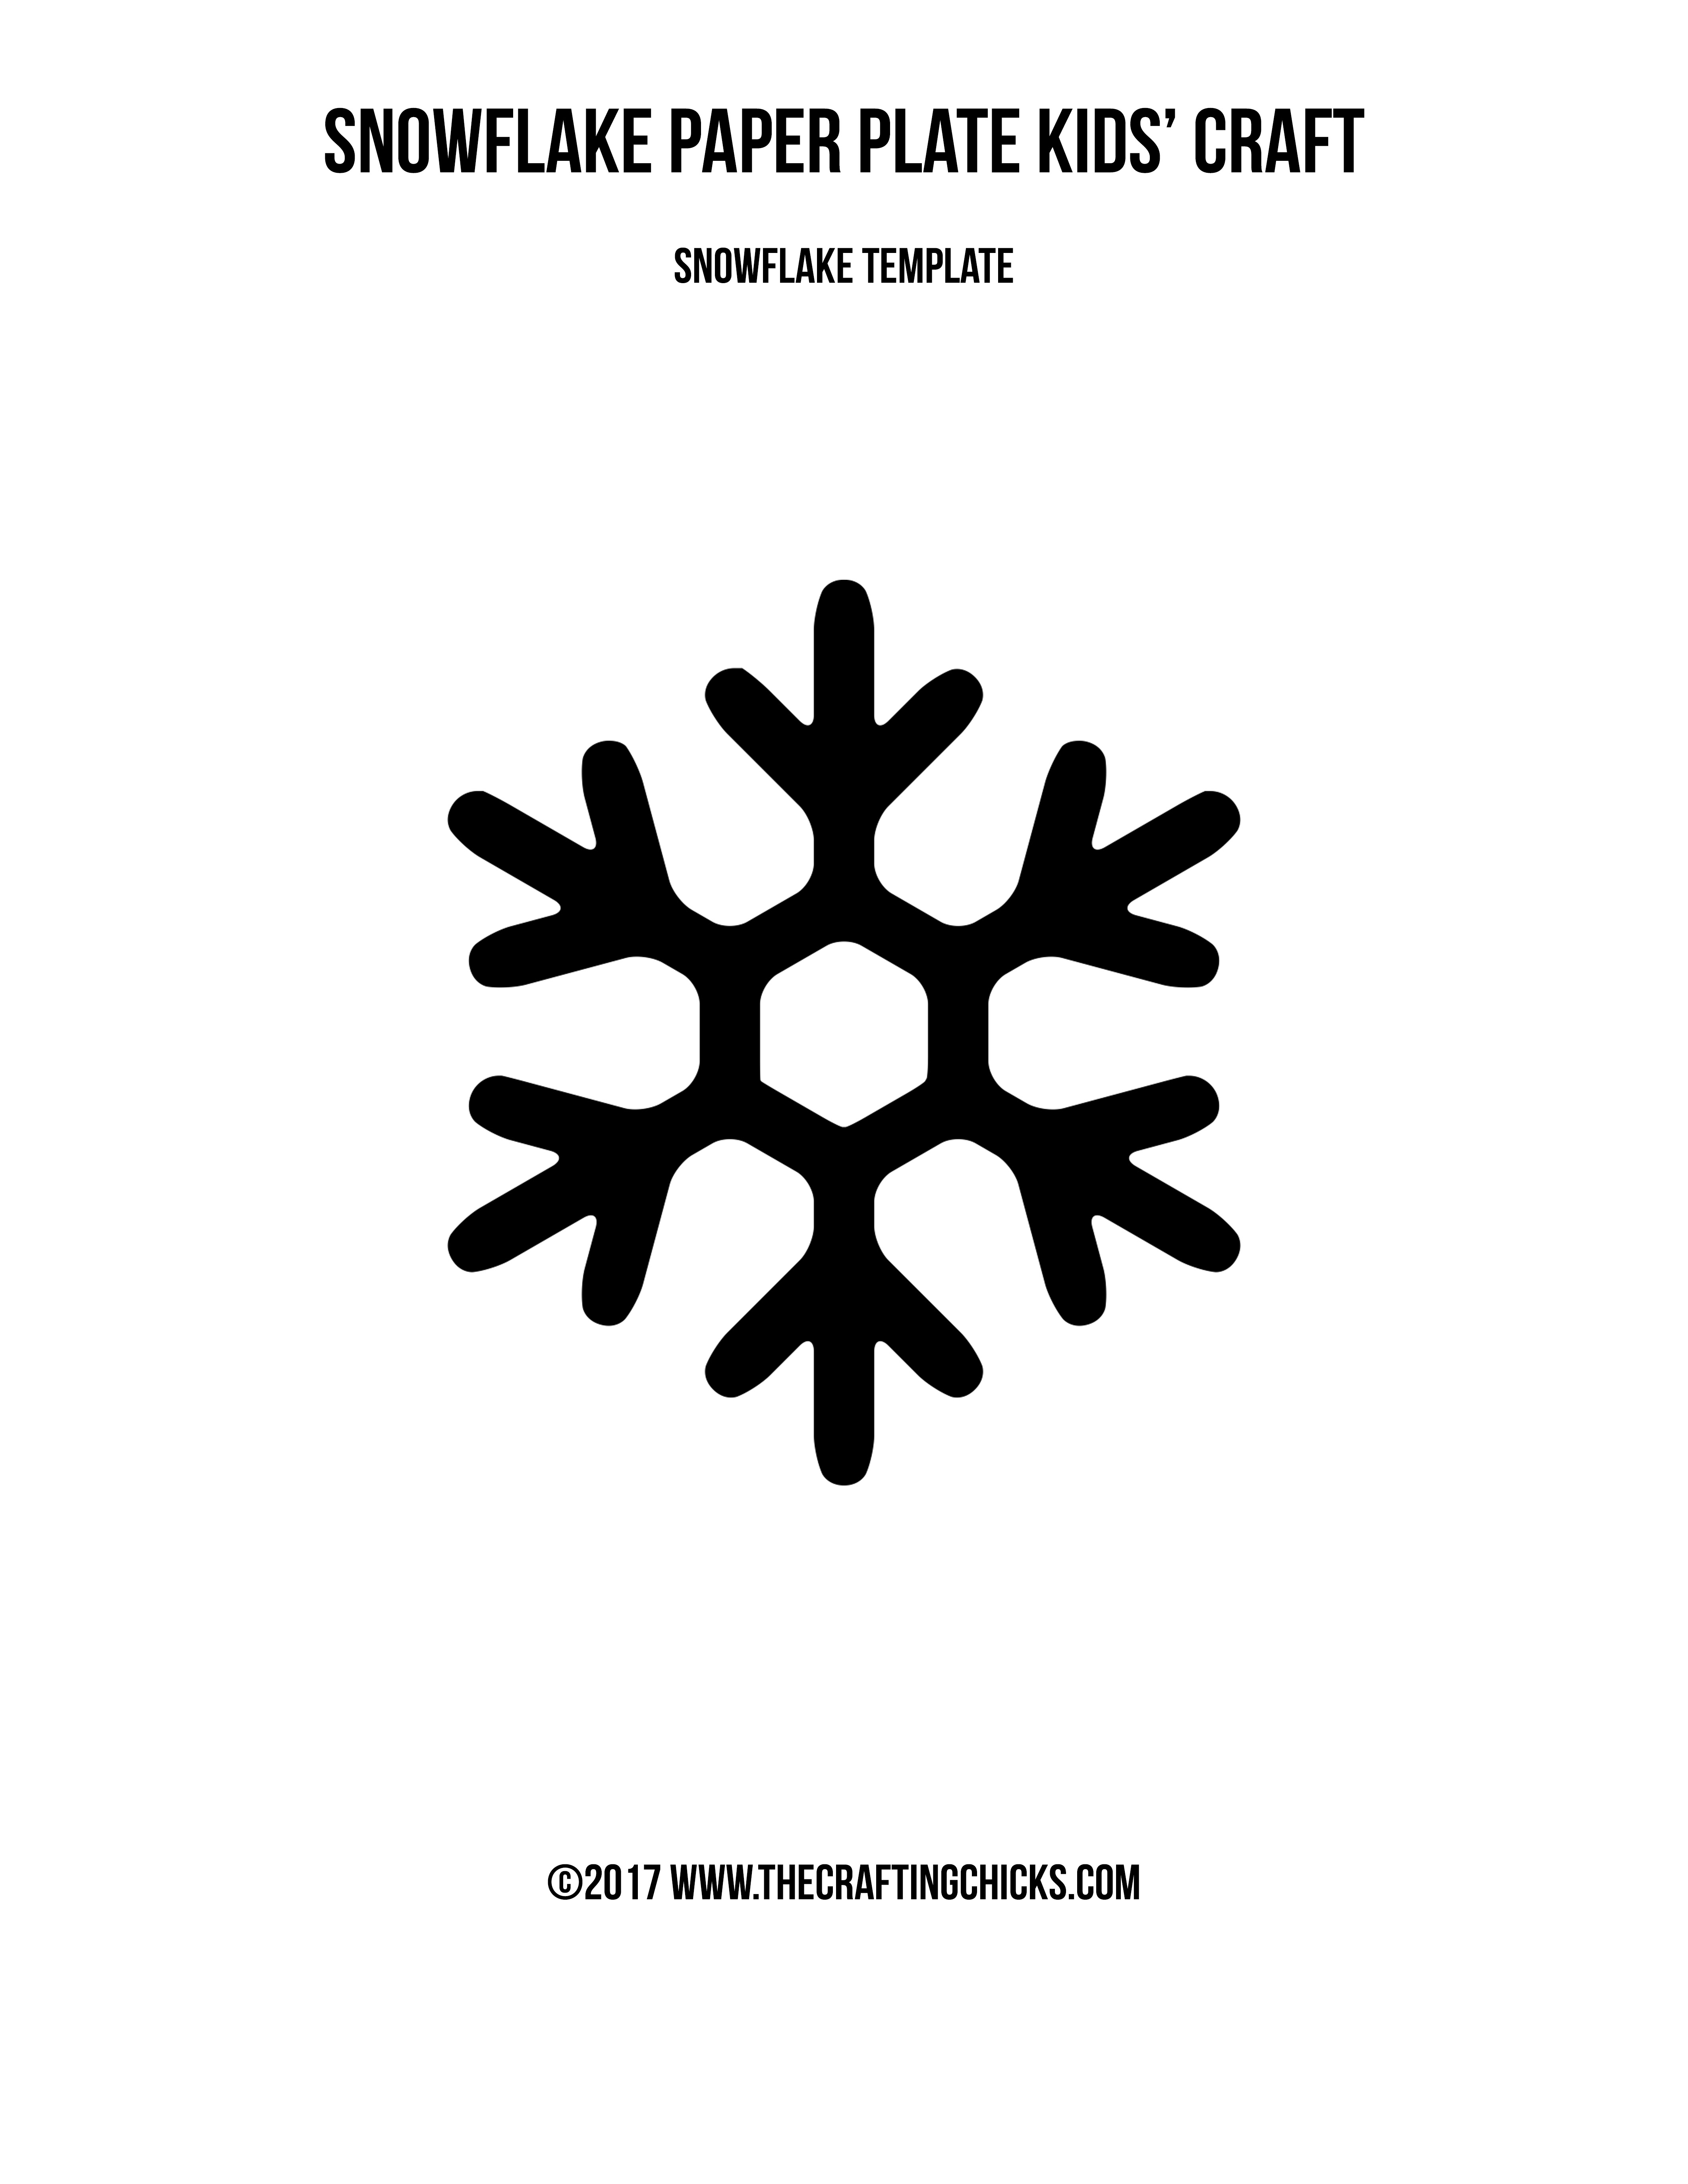 Snowflake Paper Plate Kids\' Craft - The Crafting Chicks